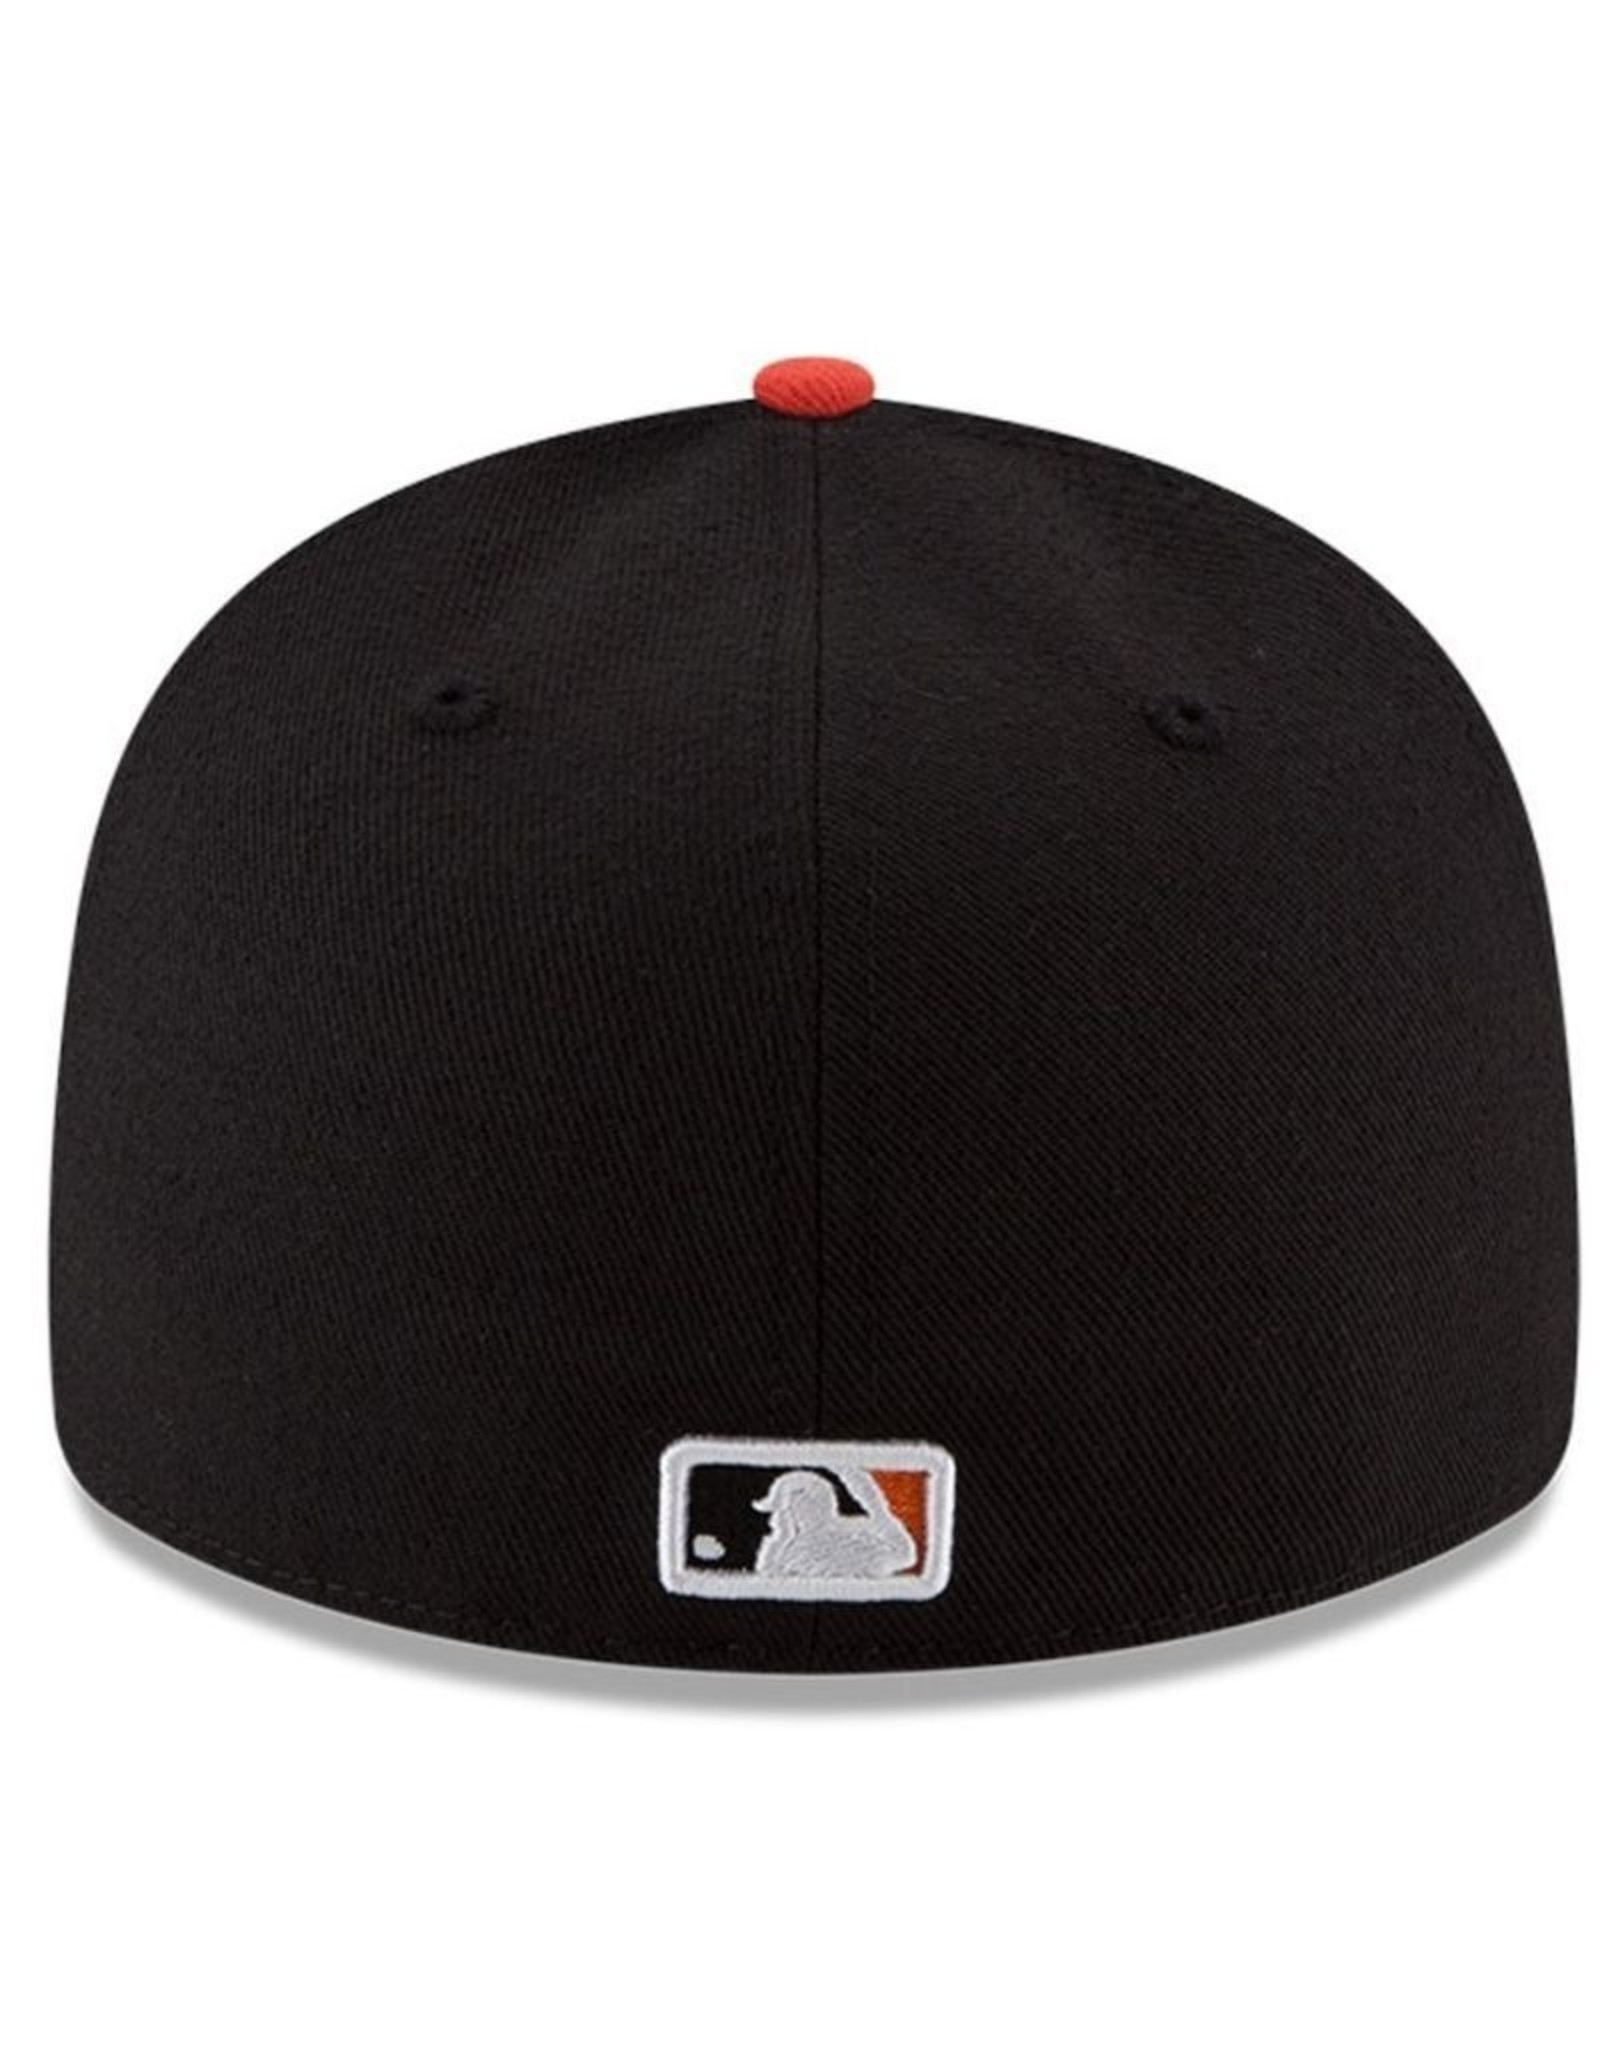 New Era On-Field Authentic 59FIFTY Home Hat Baltimore Orioles Black